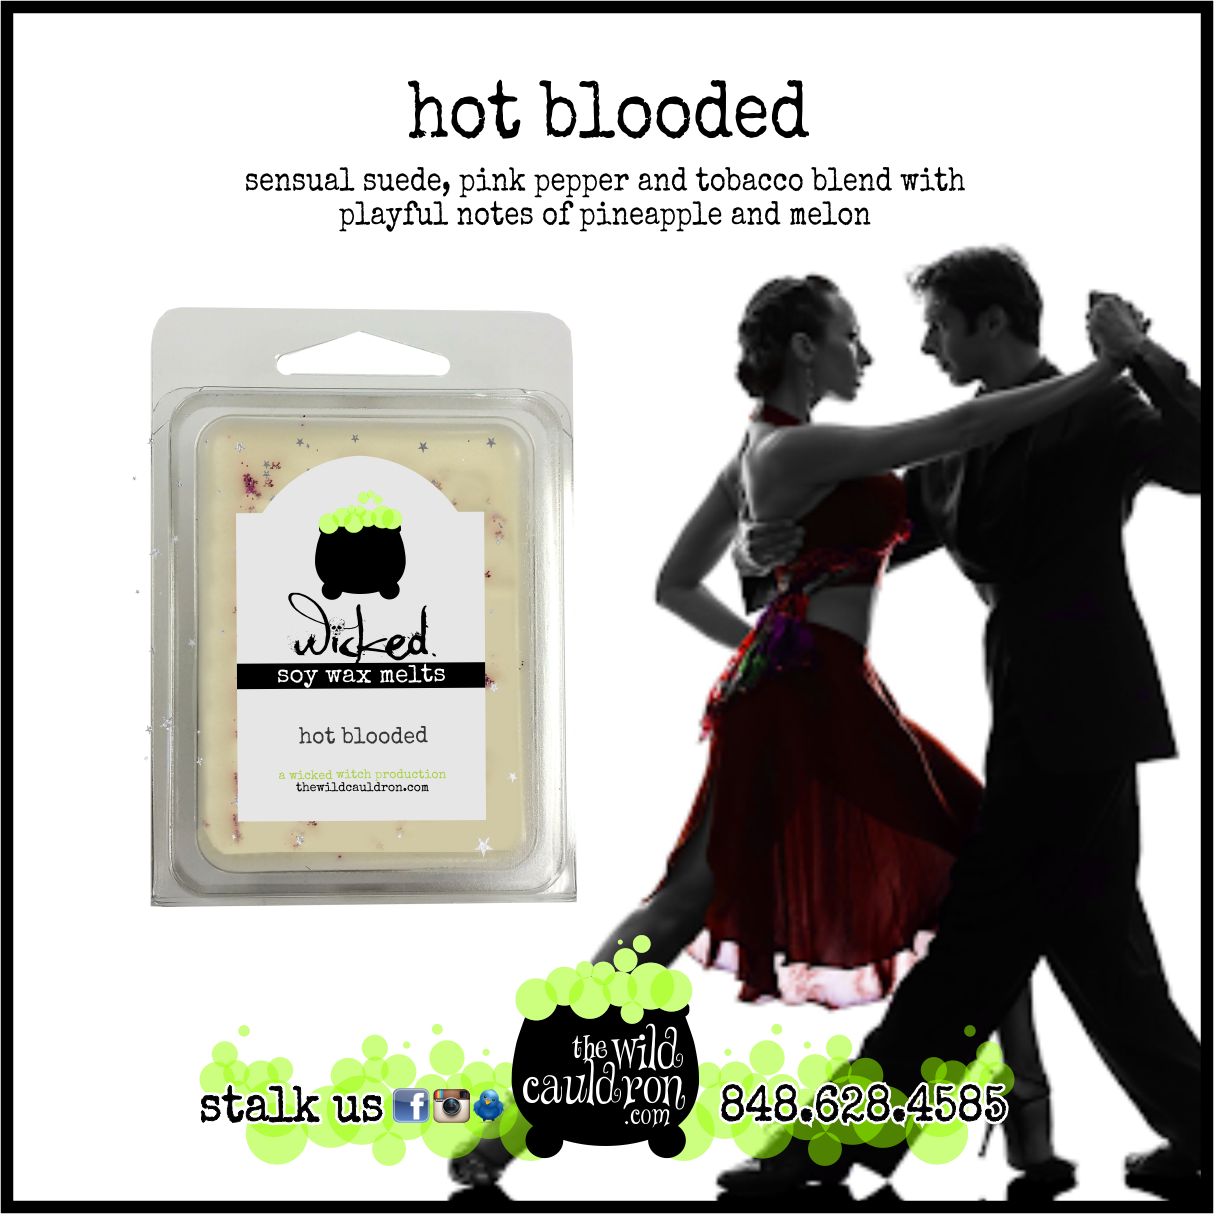 Hot Blooded Wicked Wax Melts